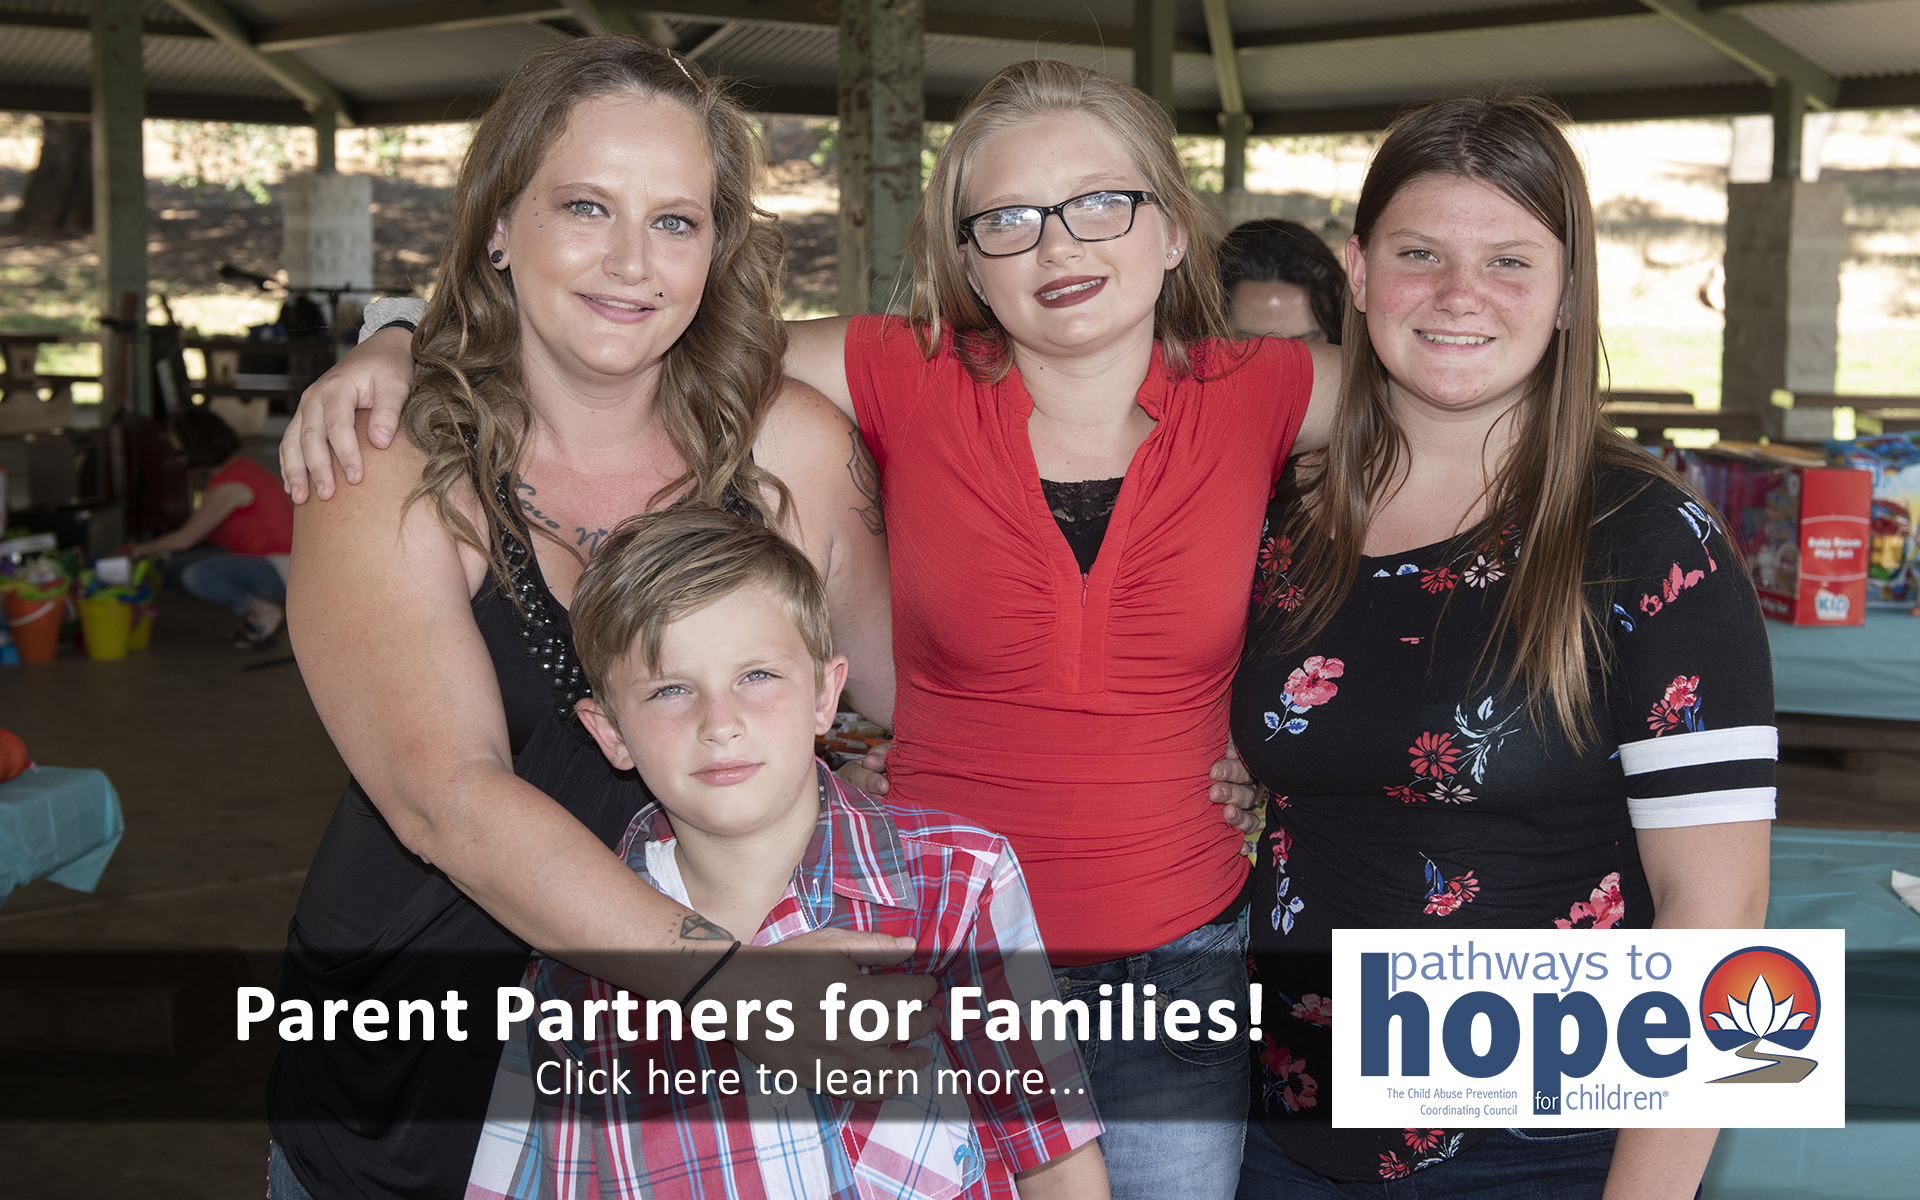 Parent Partners for Families